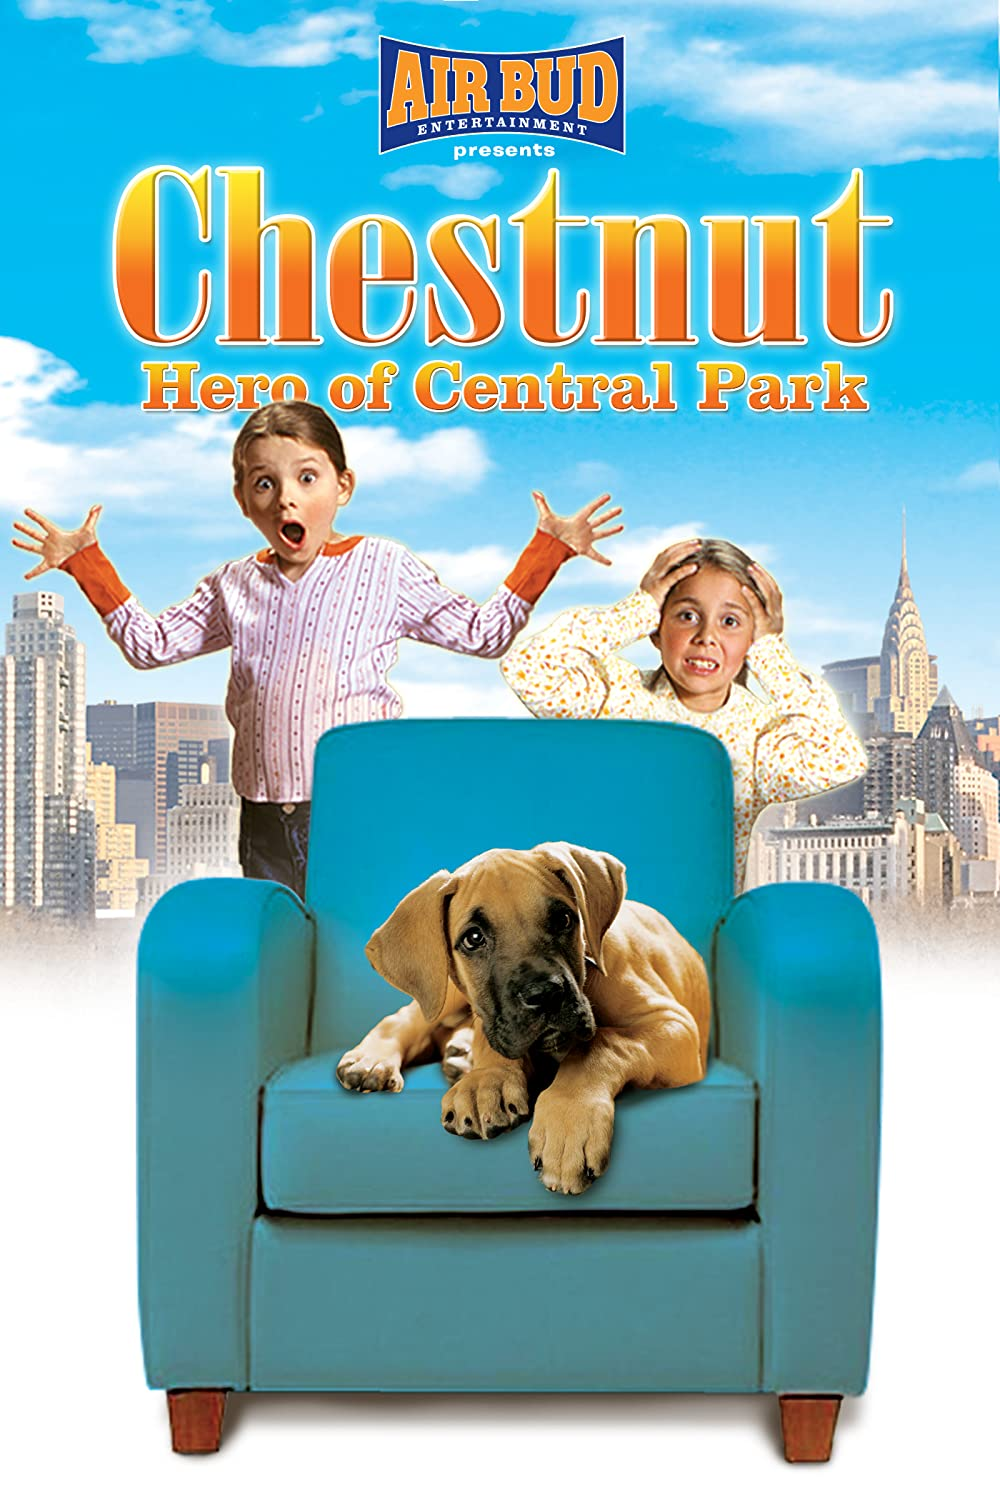 Chestnut: Hero of Central Park 2004 Hindi Dual Audio 720p HDRip ESubs 705MB Download